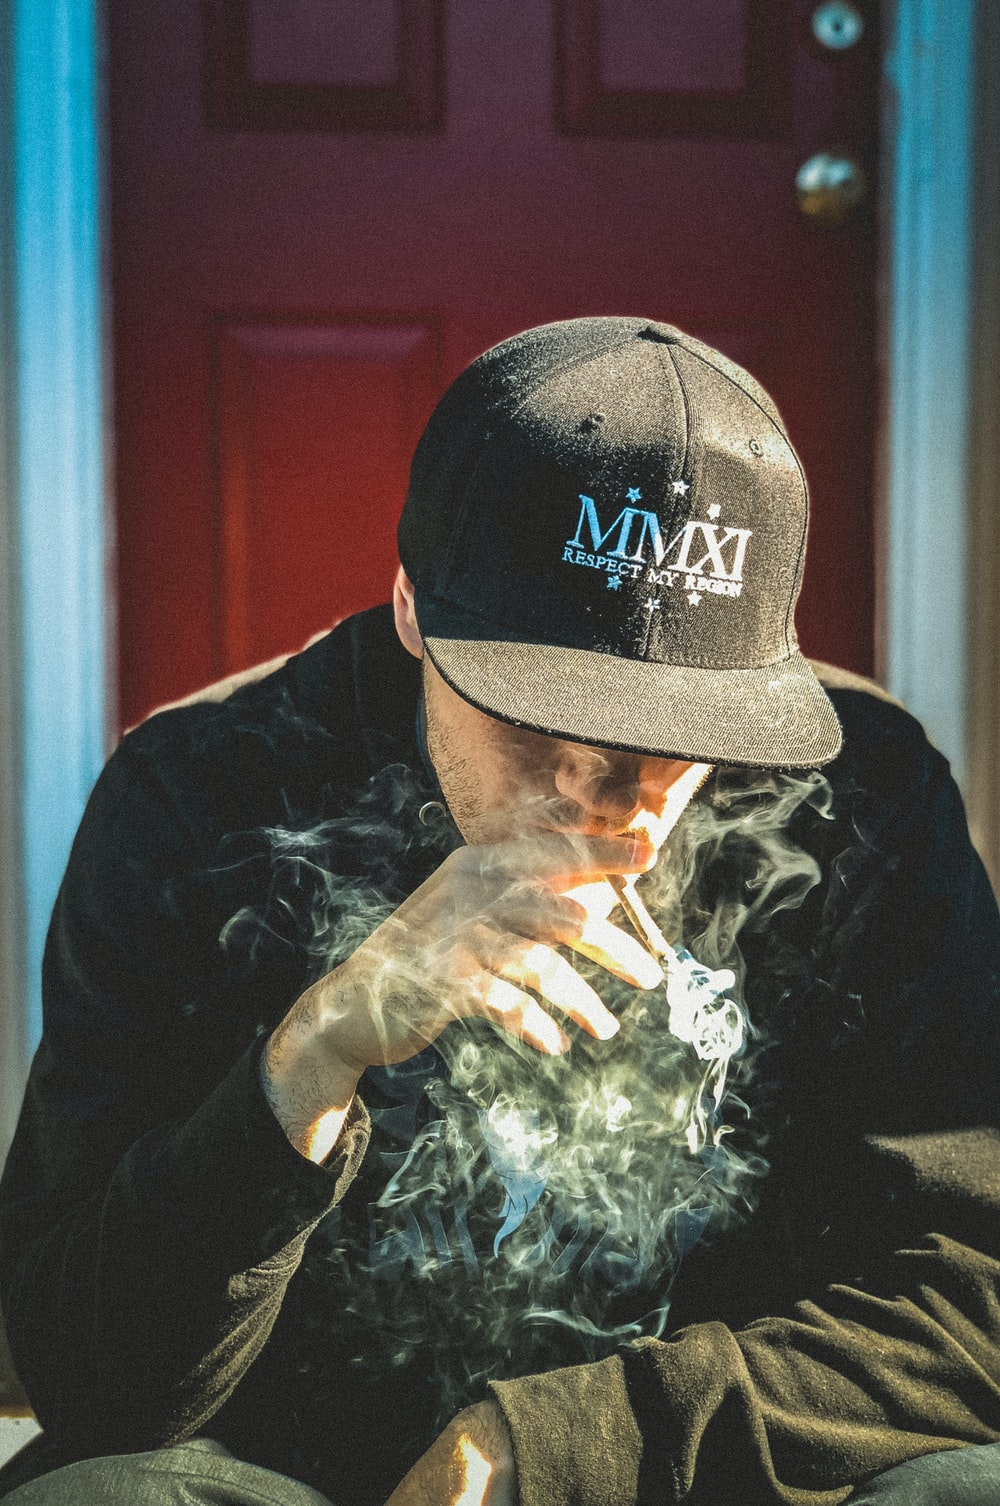 man in black cap and shirt sitting near door while smoking